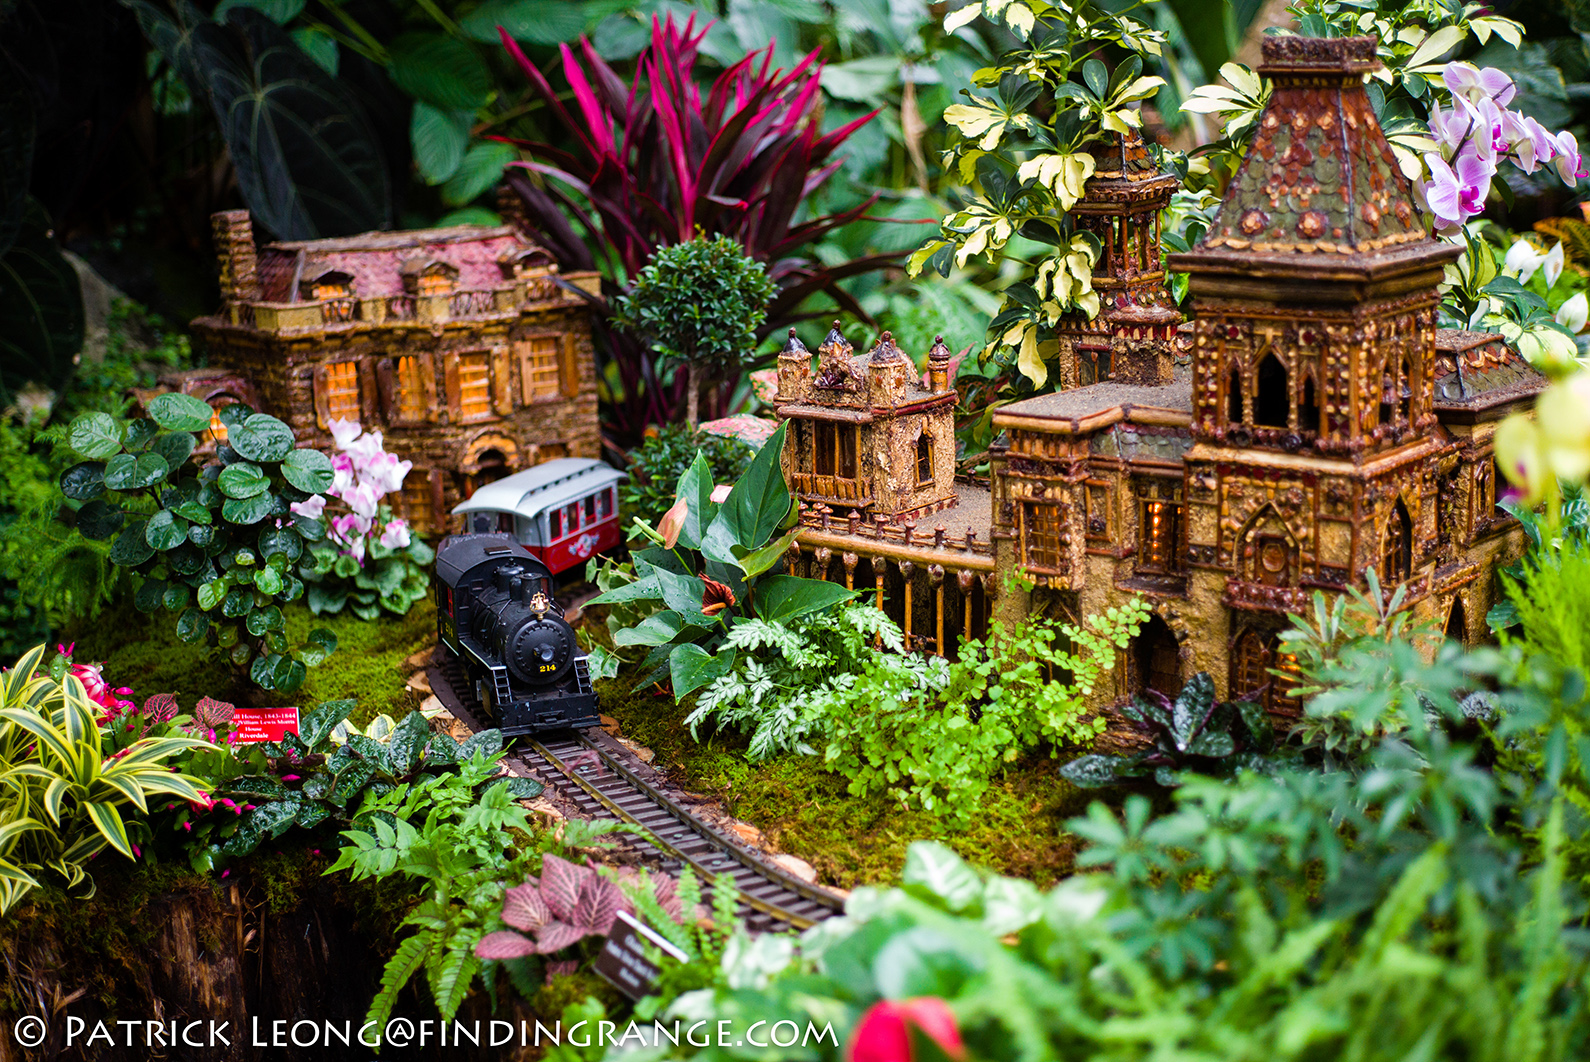 Holiday train show at the new york botanical garden Botanical garden train show